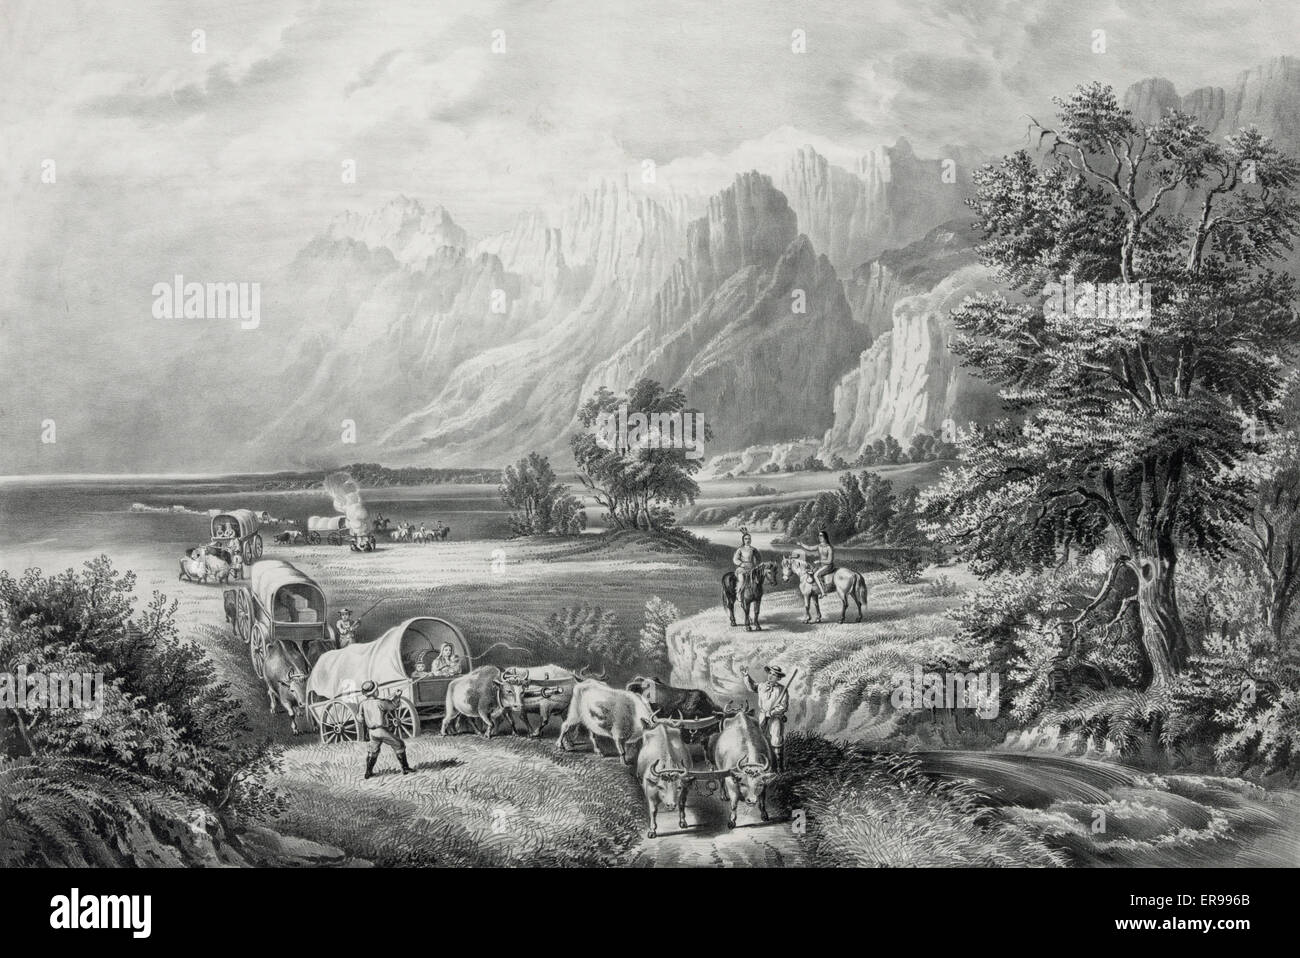 The Rocky Mountains : emigrants crossing the plains. Date 1866. - Stock Image